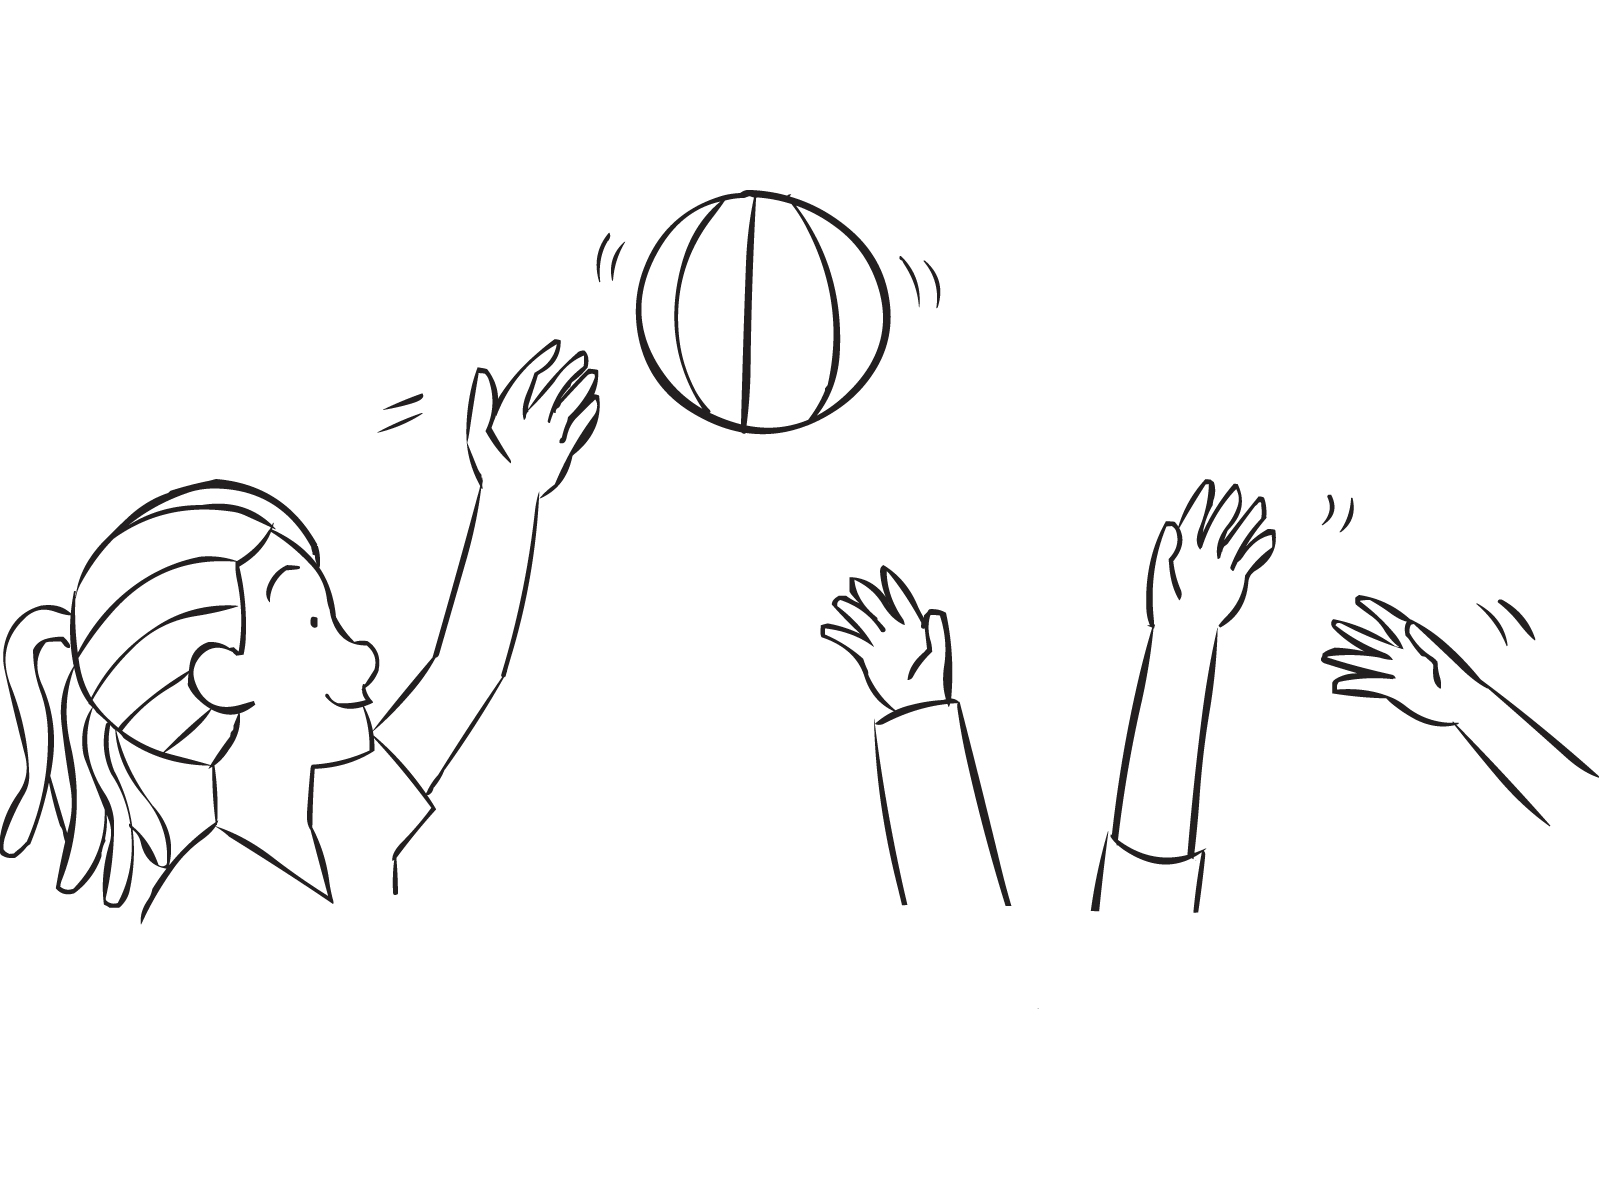 Drawing resources gesture. Moonball all time classic